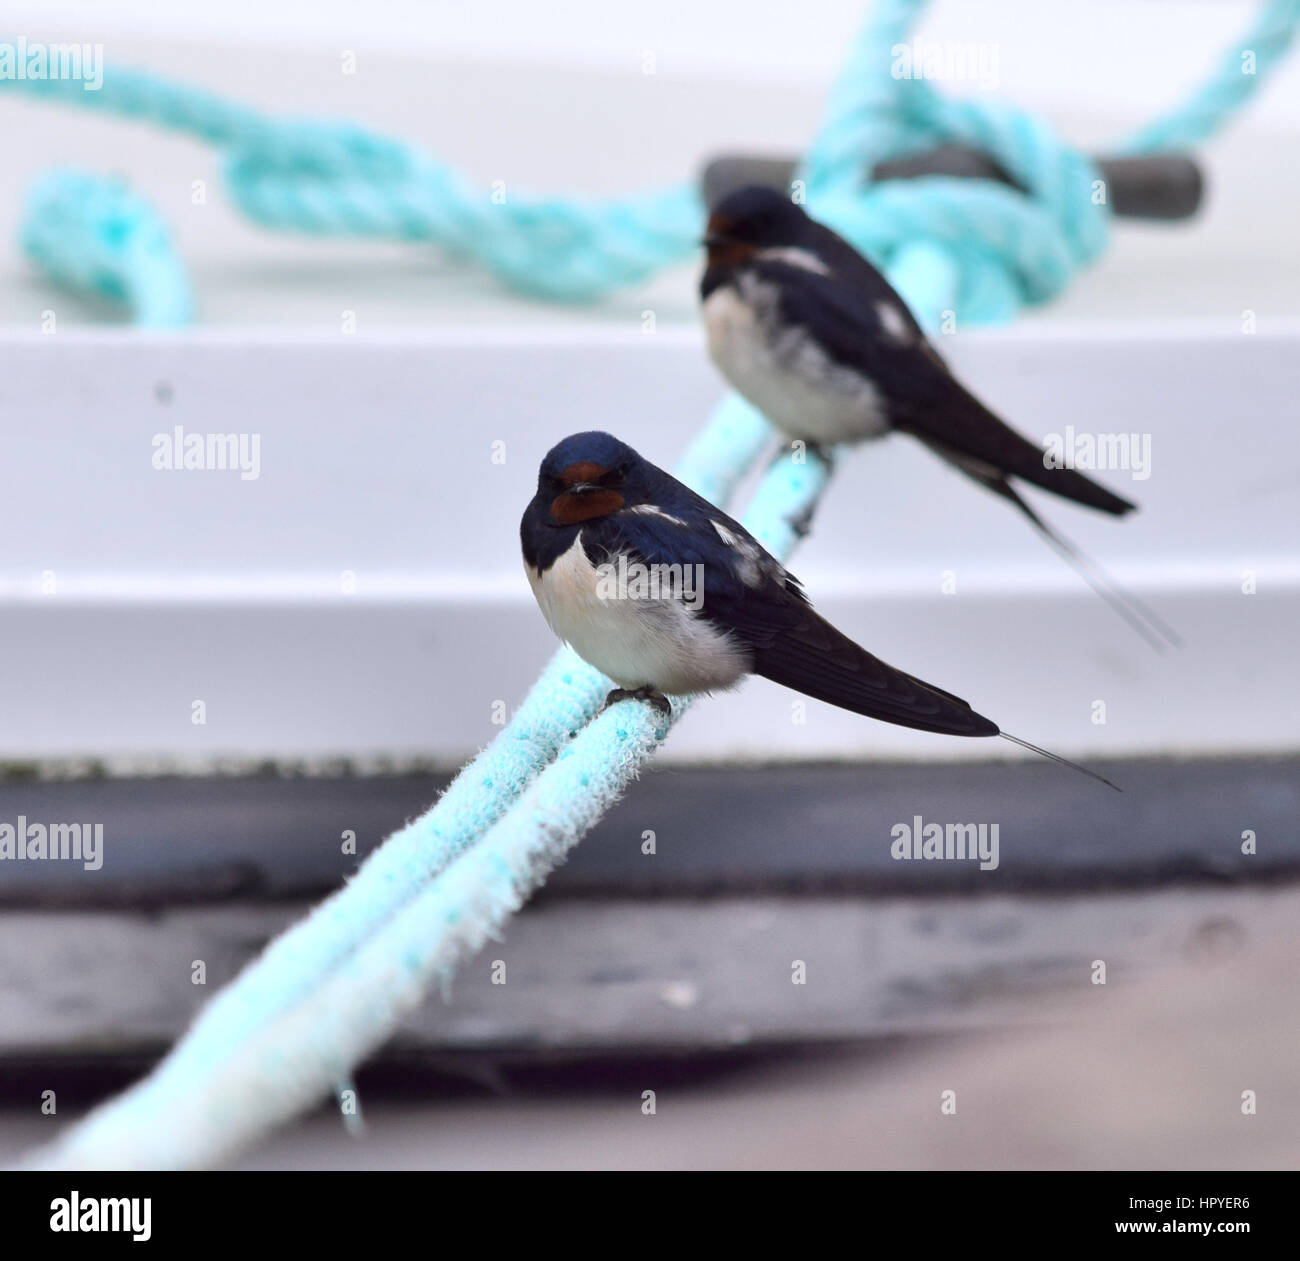 Swallows resting on mooring ropes - Stock Image